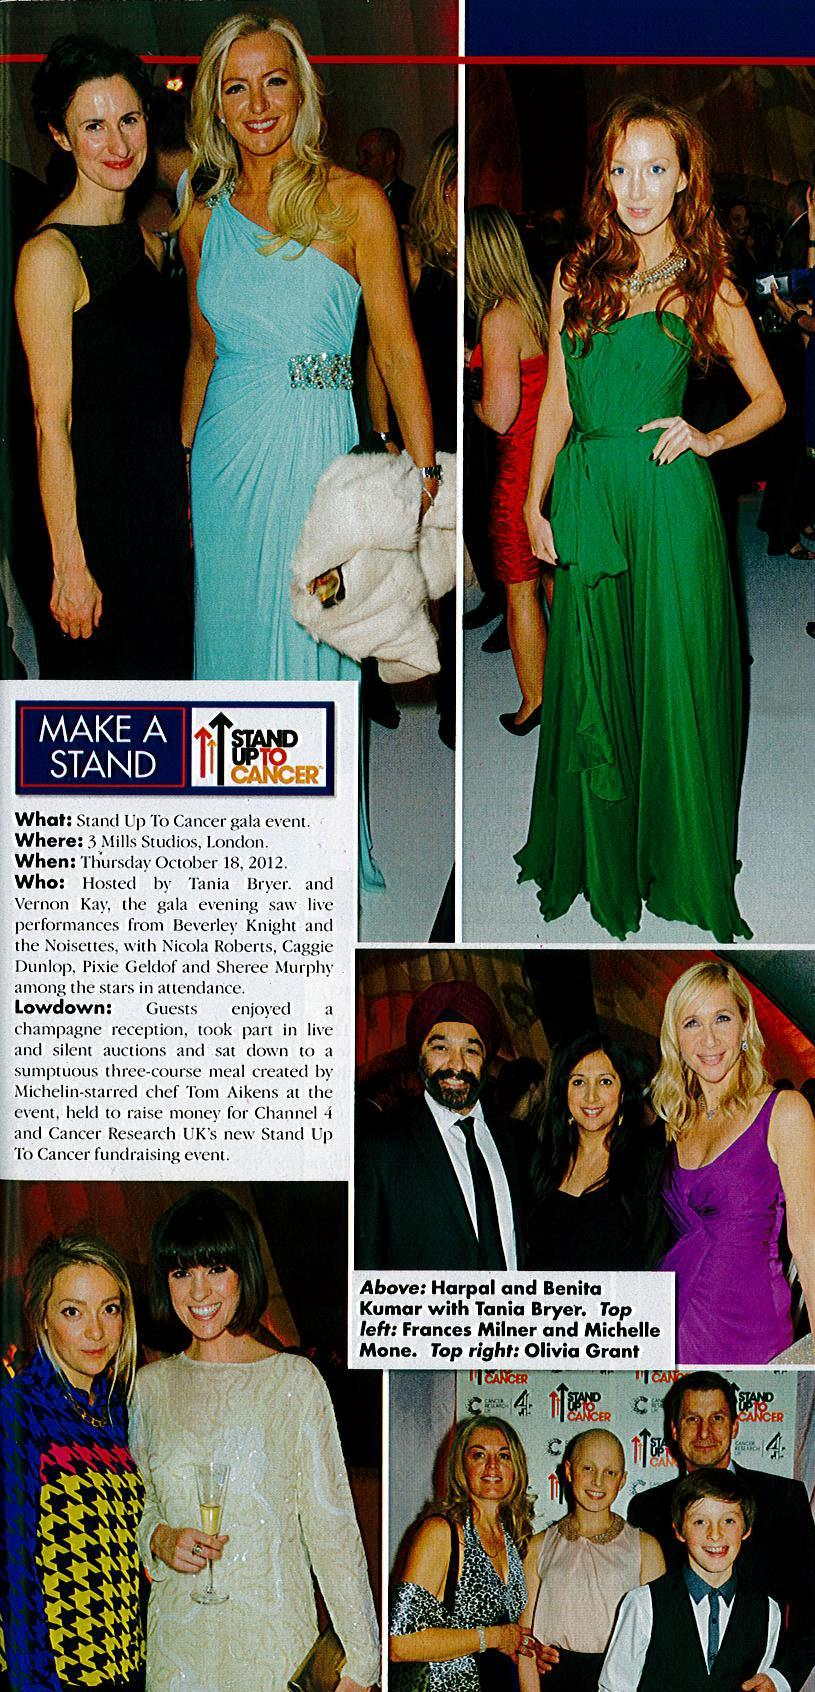 OK-Magazine-Michelle-Mone-Issue-851-Oct-30